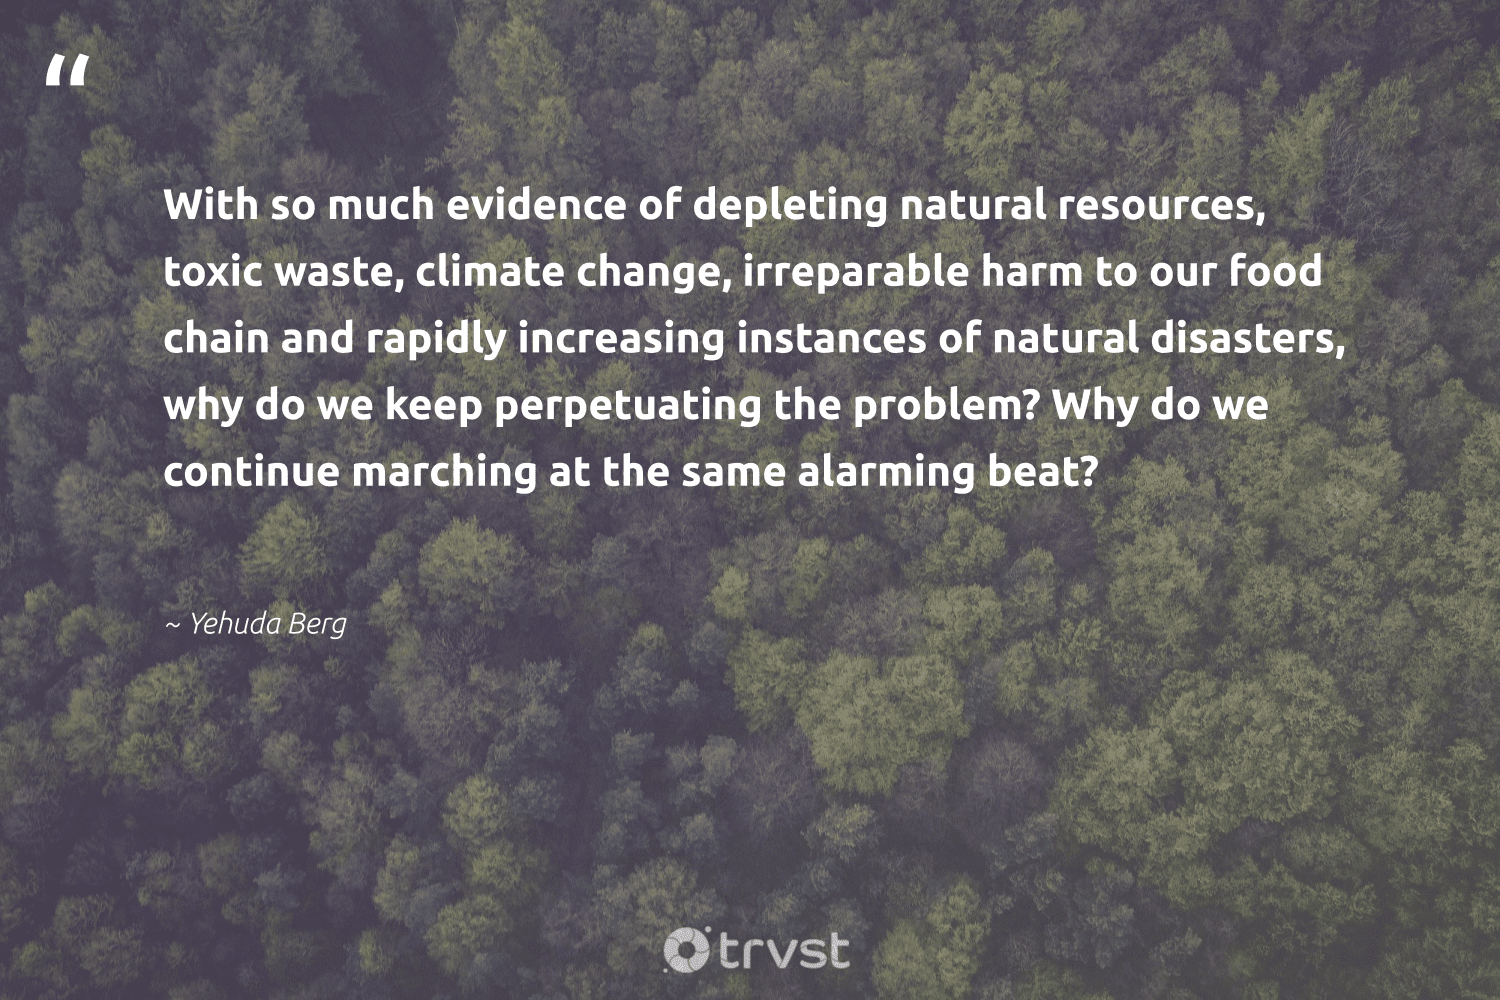 """""""With so much evidence of depleting natural resources, toxic waste, climate change, irreparable harm to our food chain and rapidly increasing instances of natural disasters, why do we keep perpetuating the problem? Why do we continue marching at the same alarming beat?""""  - Yehuda Berg #trvst #quotes #waste #climatechange #toxic #natural #climate #food #globalwarming #pollute #getoutside #climatefight"""